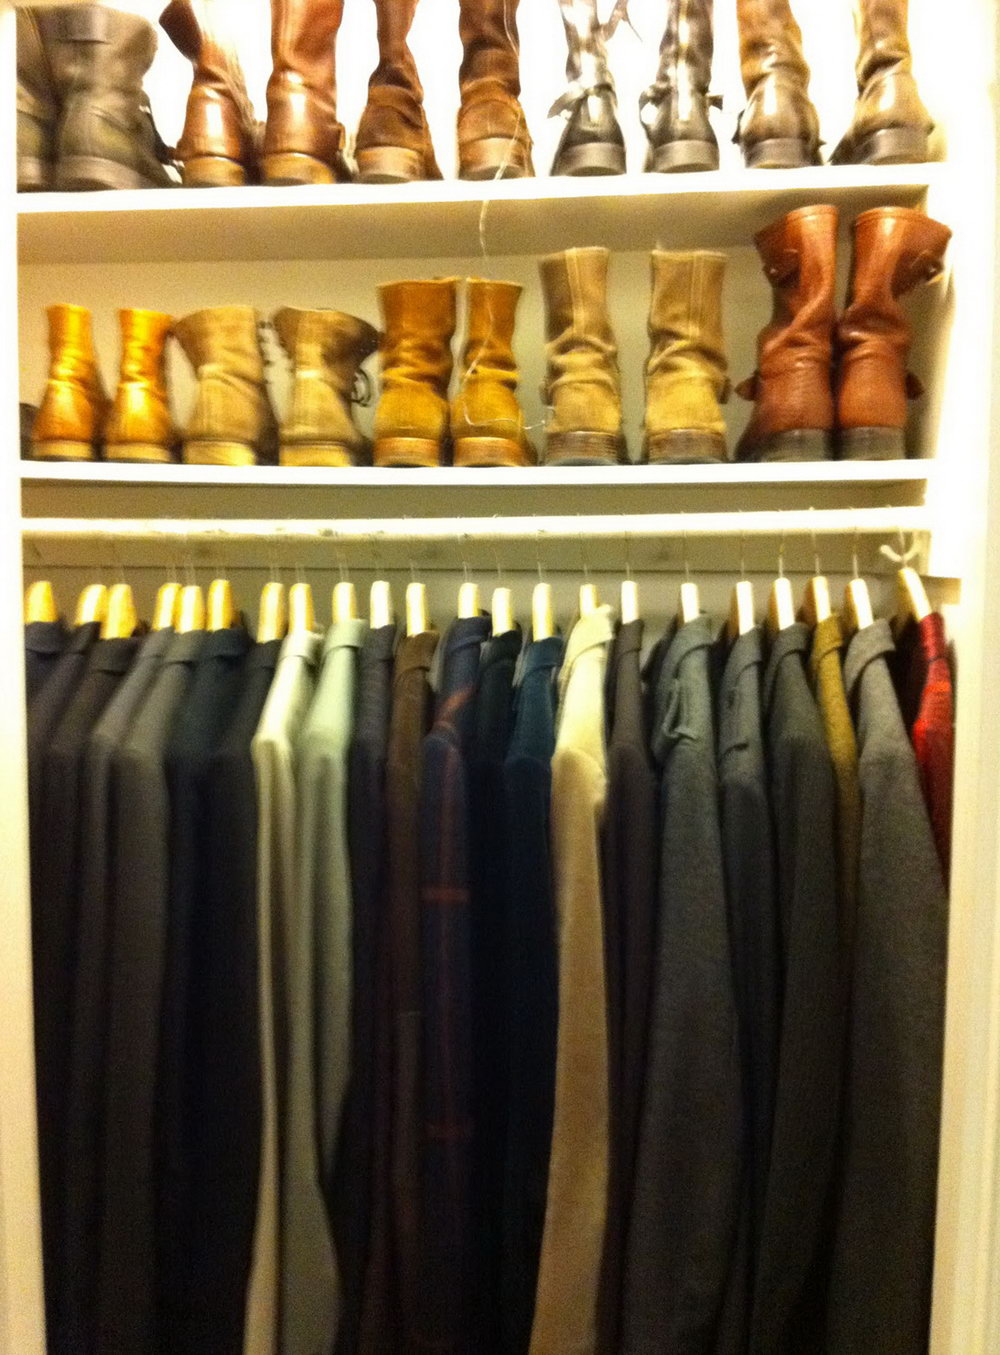 Picture Of A Closet Full Of Clothes